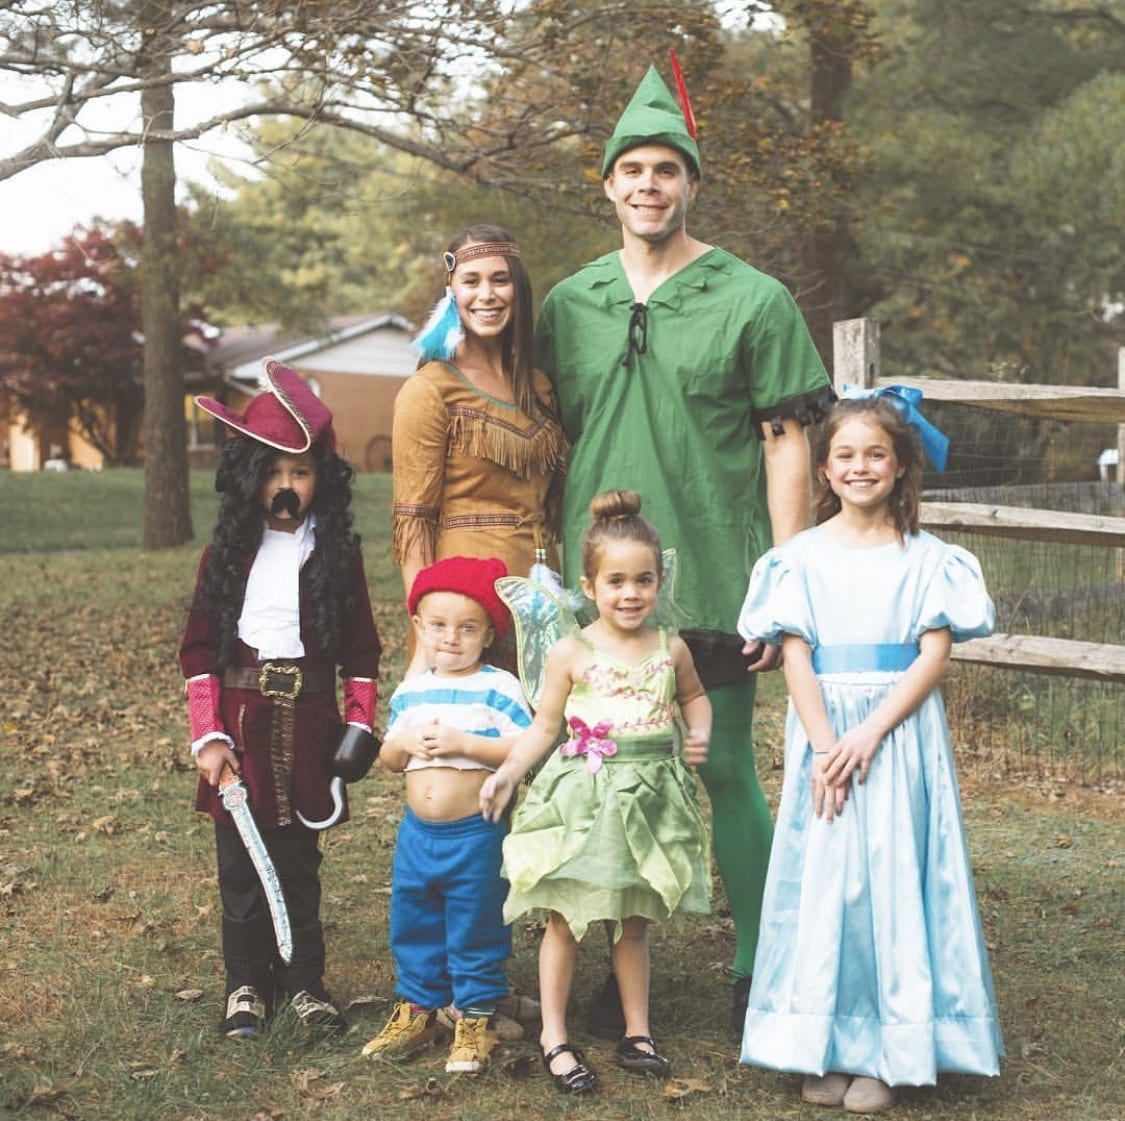 Family dressed up as the characters from Peter Pan for Halloween.